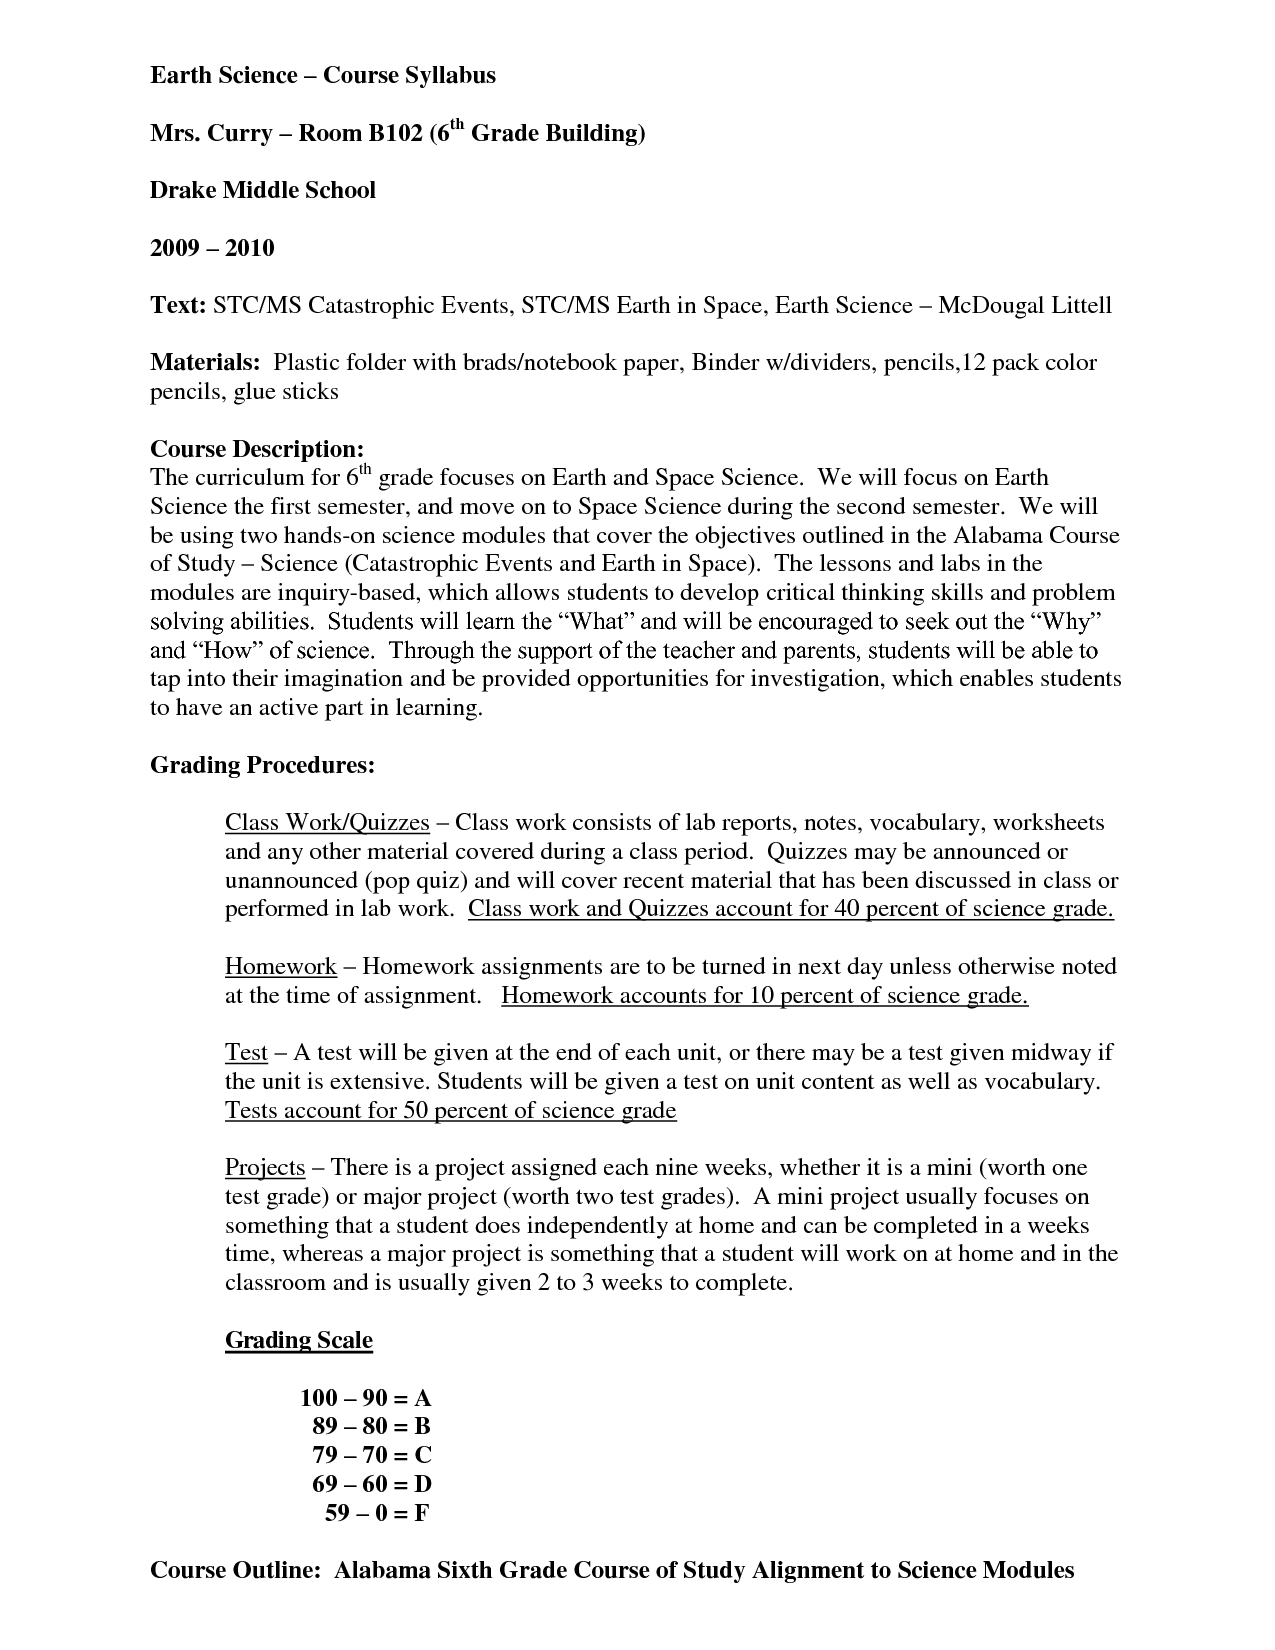 Earth Sciences Worksheet 10th Grade